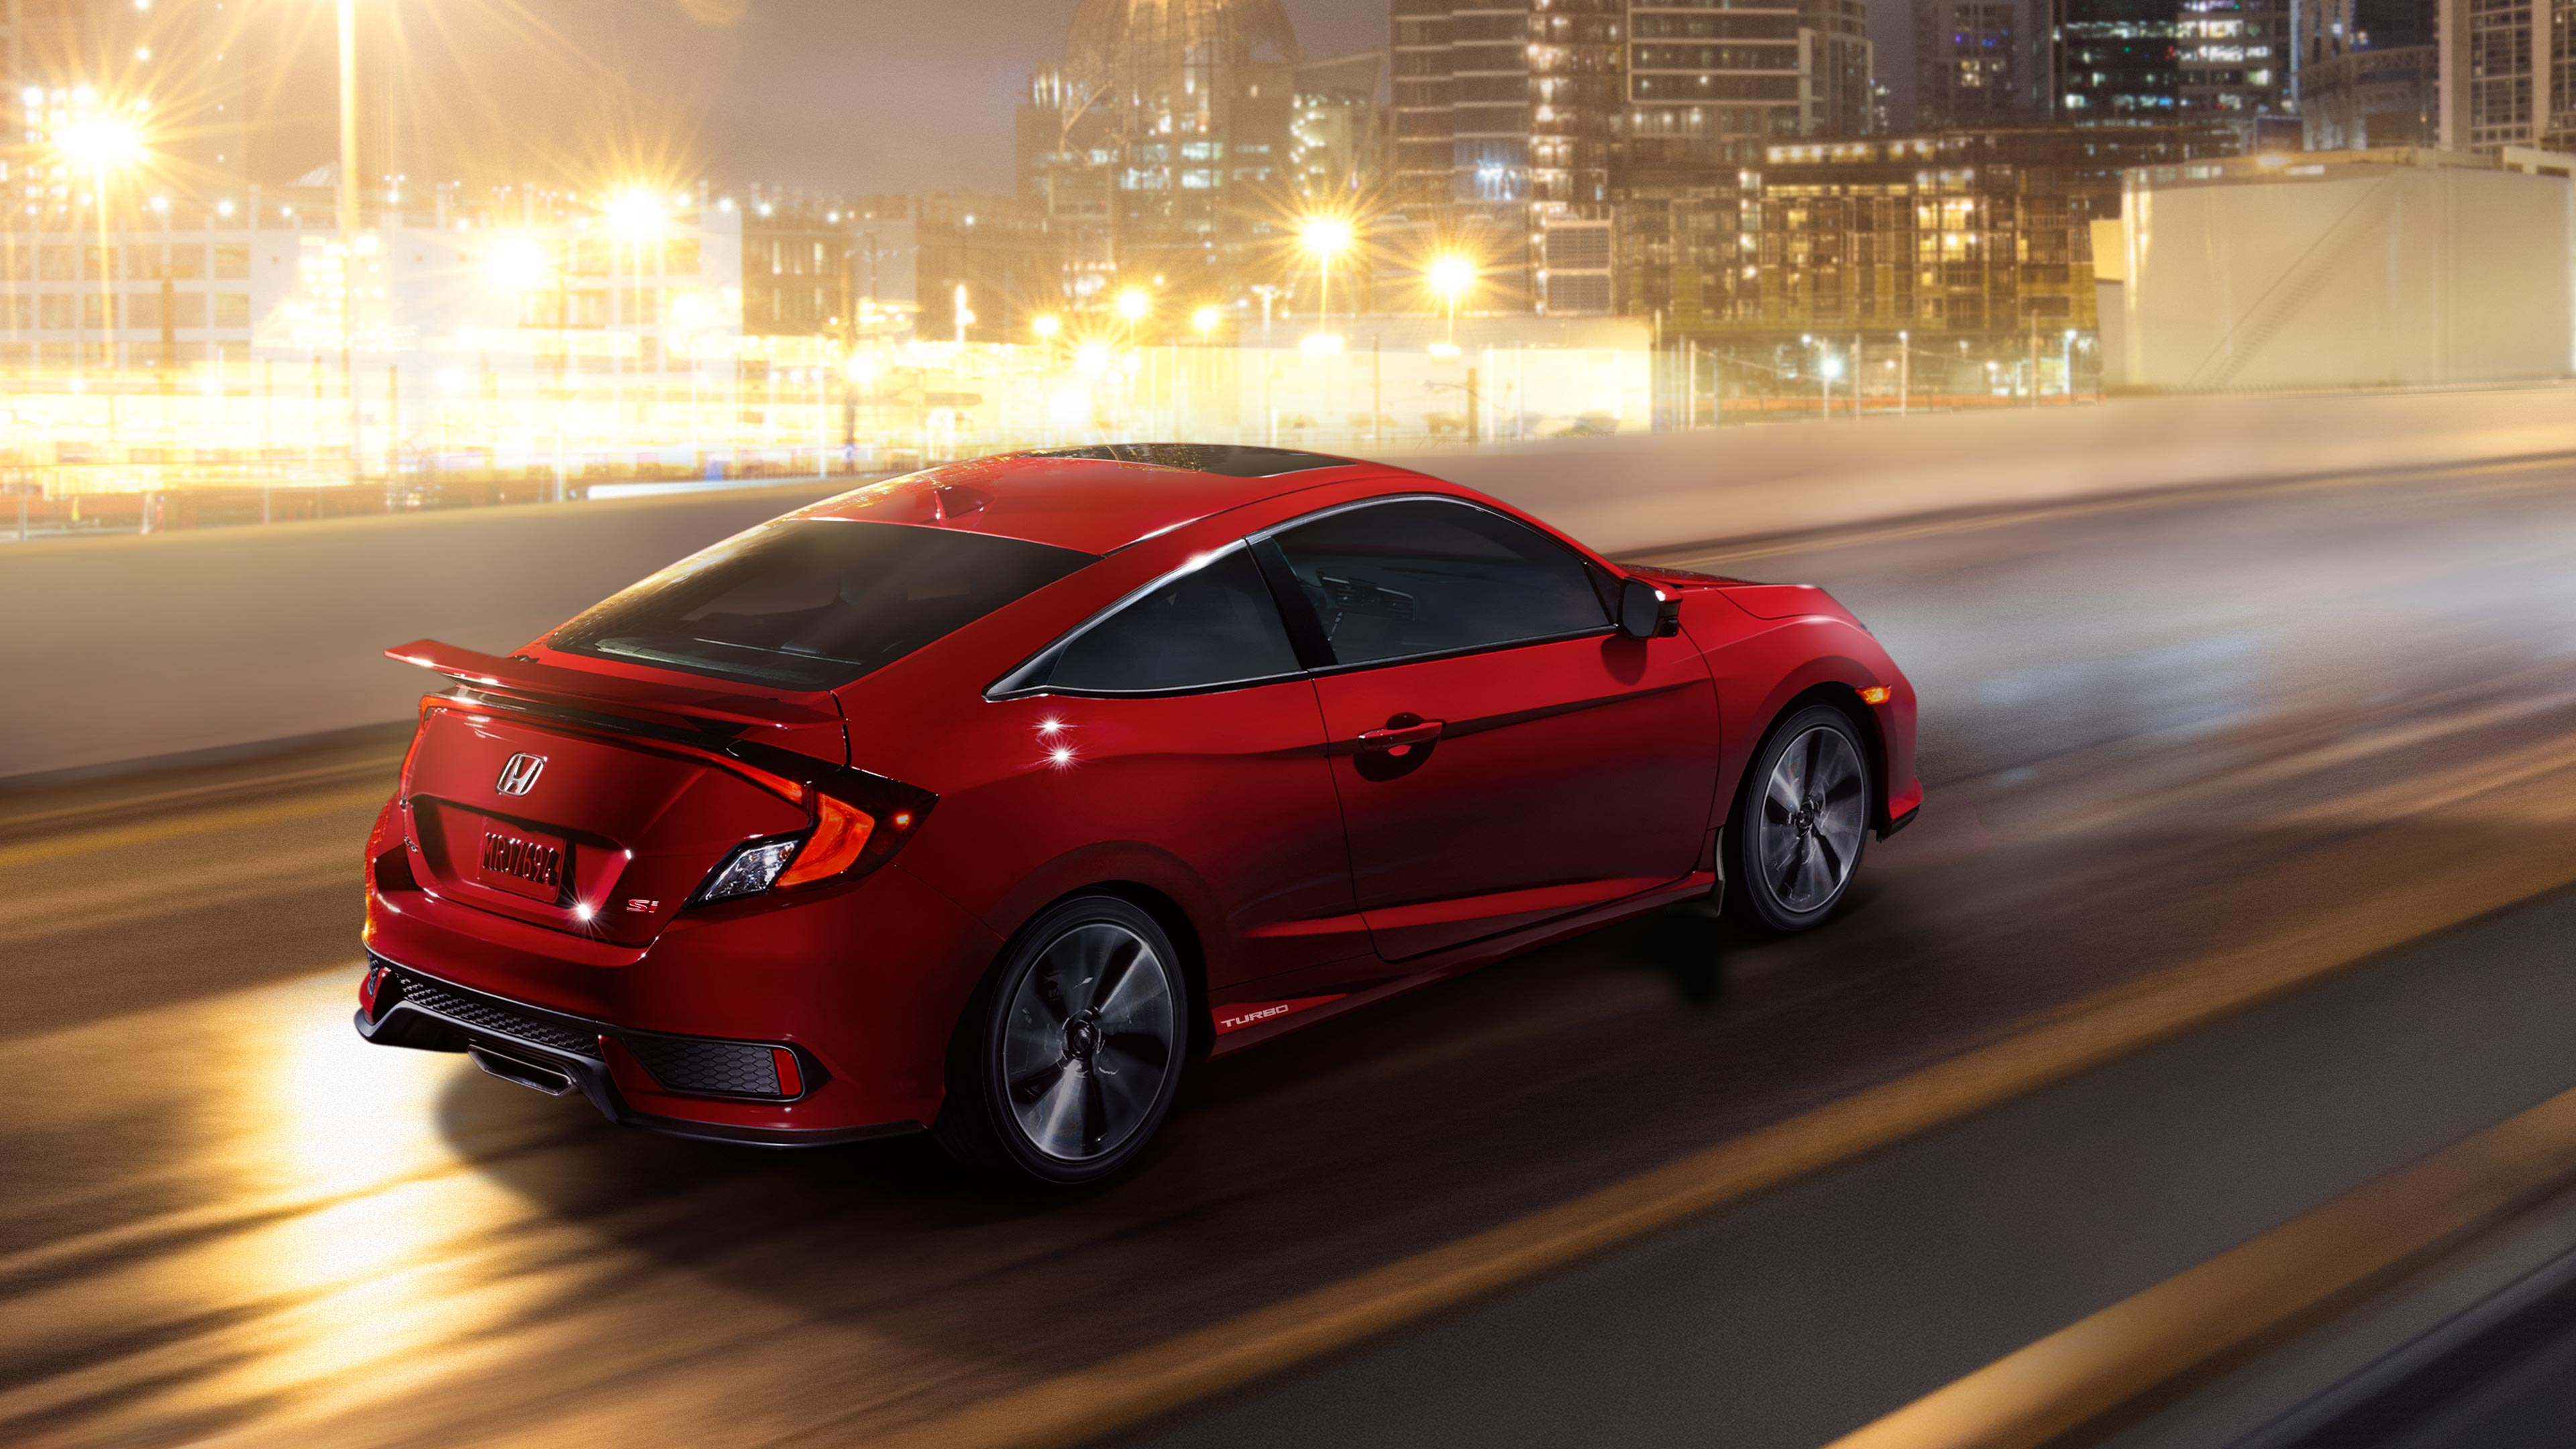 Civic Coupe Si driving at night